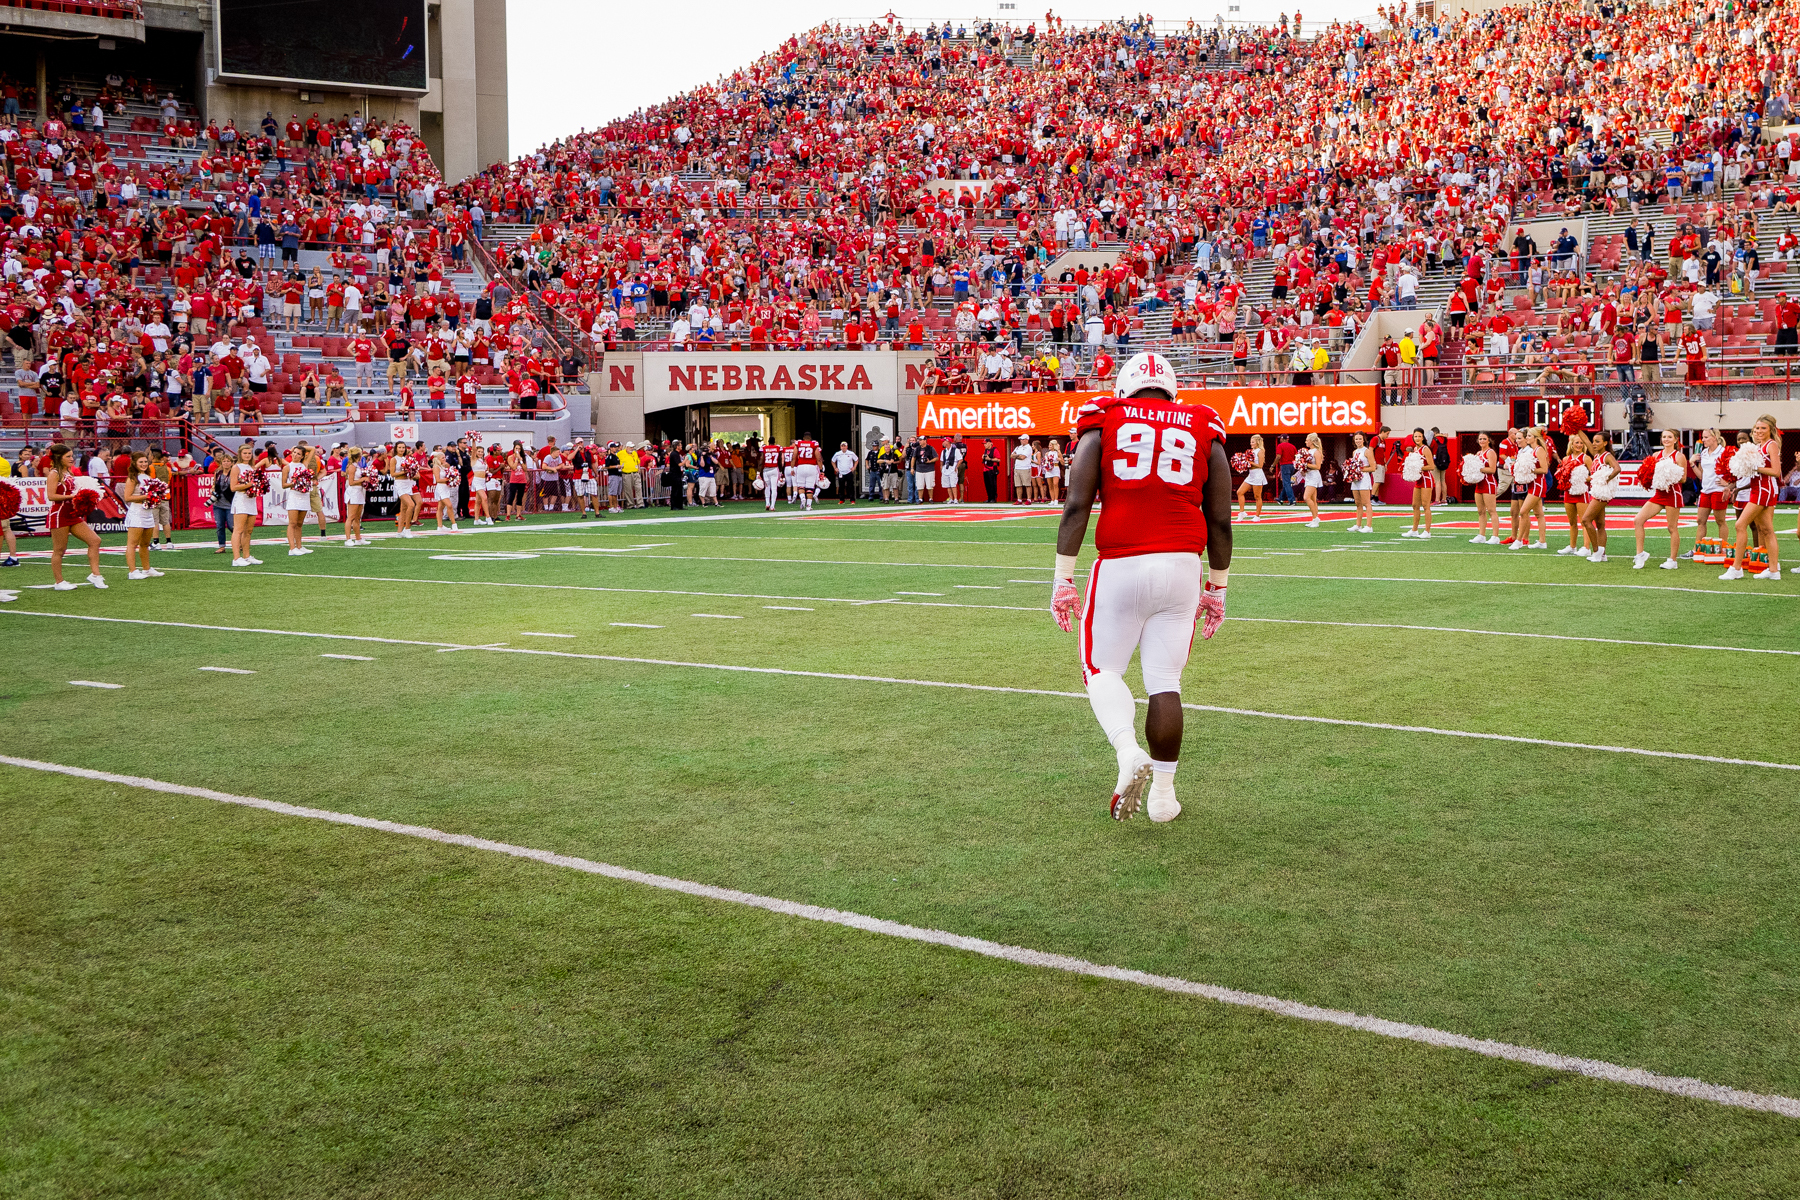 Vincent Valentine #98 of the Nebraska Cornhuskers walks off the field following Nebraska's 33-28 loss to BYU on Sept. 5, 2015. Photo by Aaron Babcock